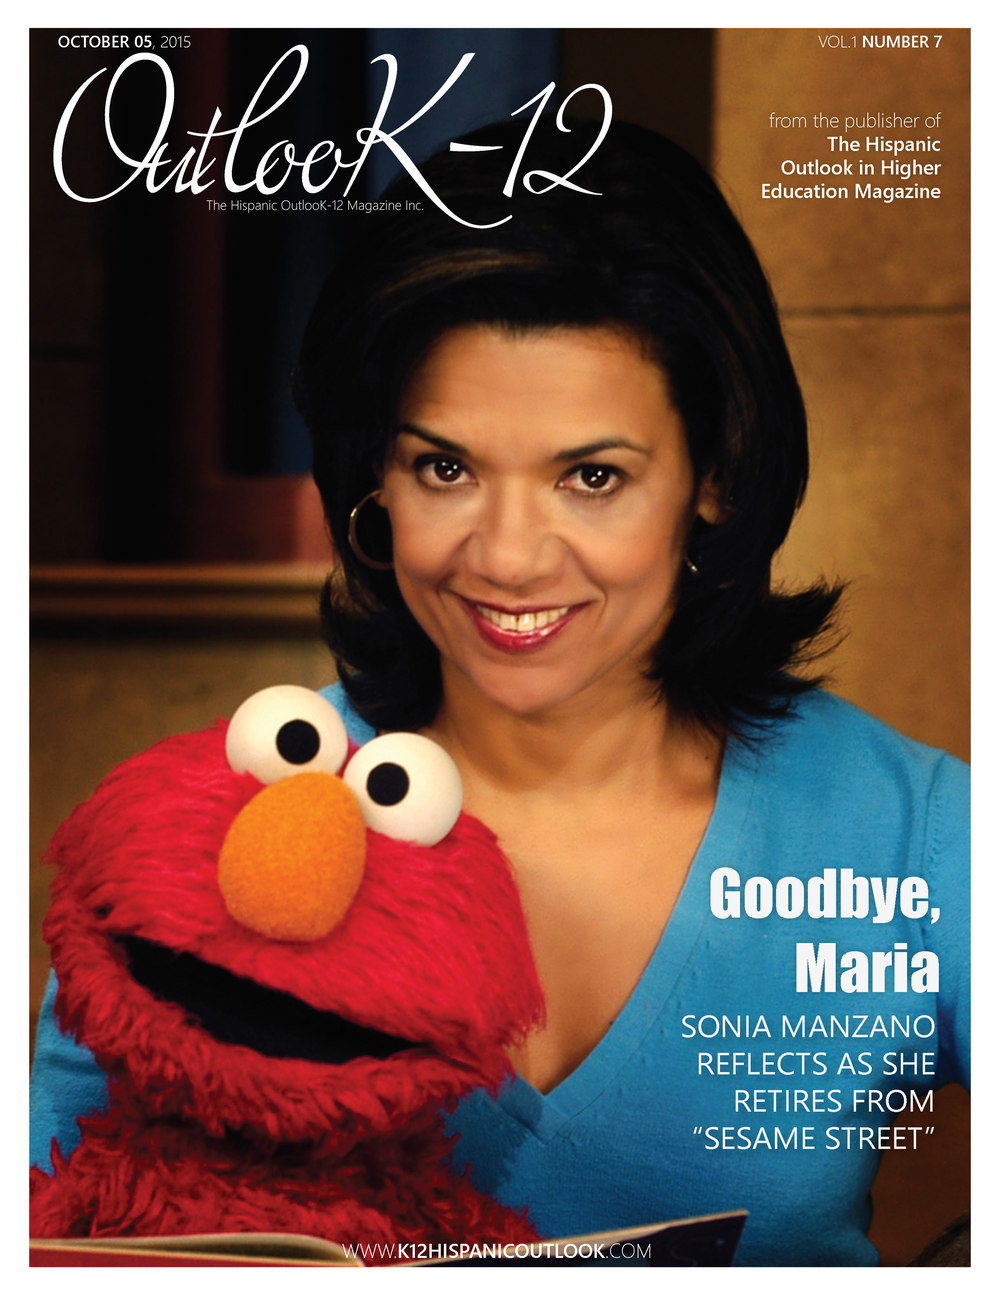 The Hispanic Outloo-12 Magazine 10/05/2015